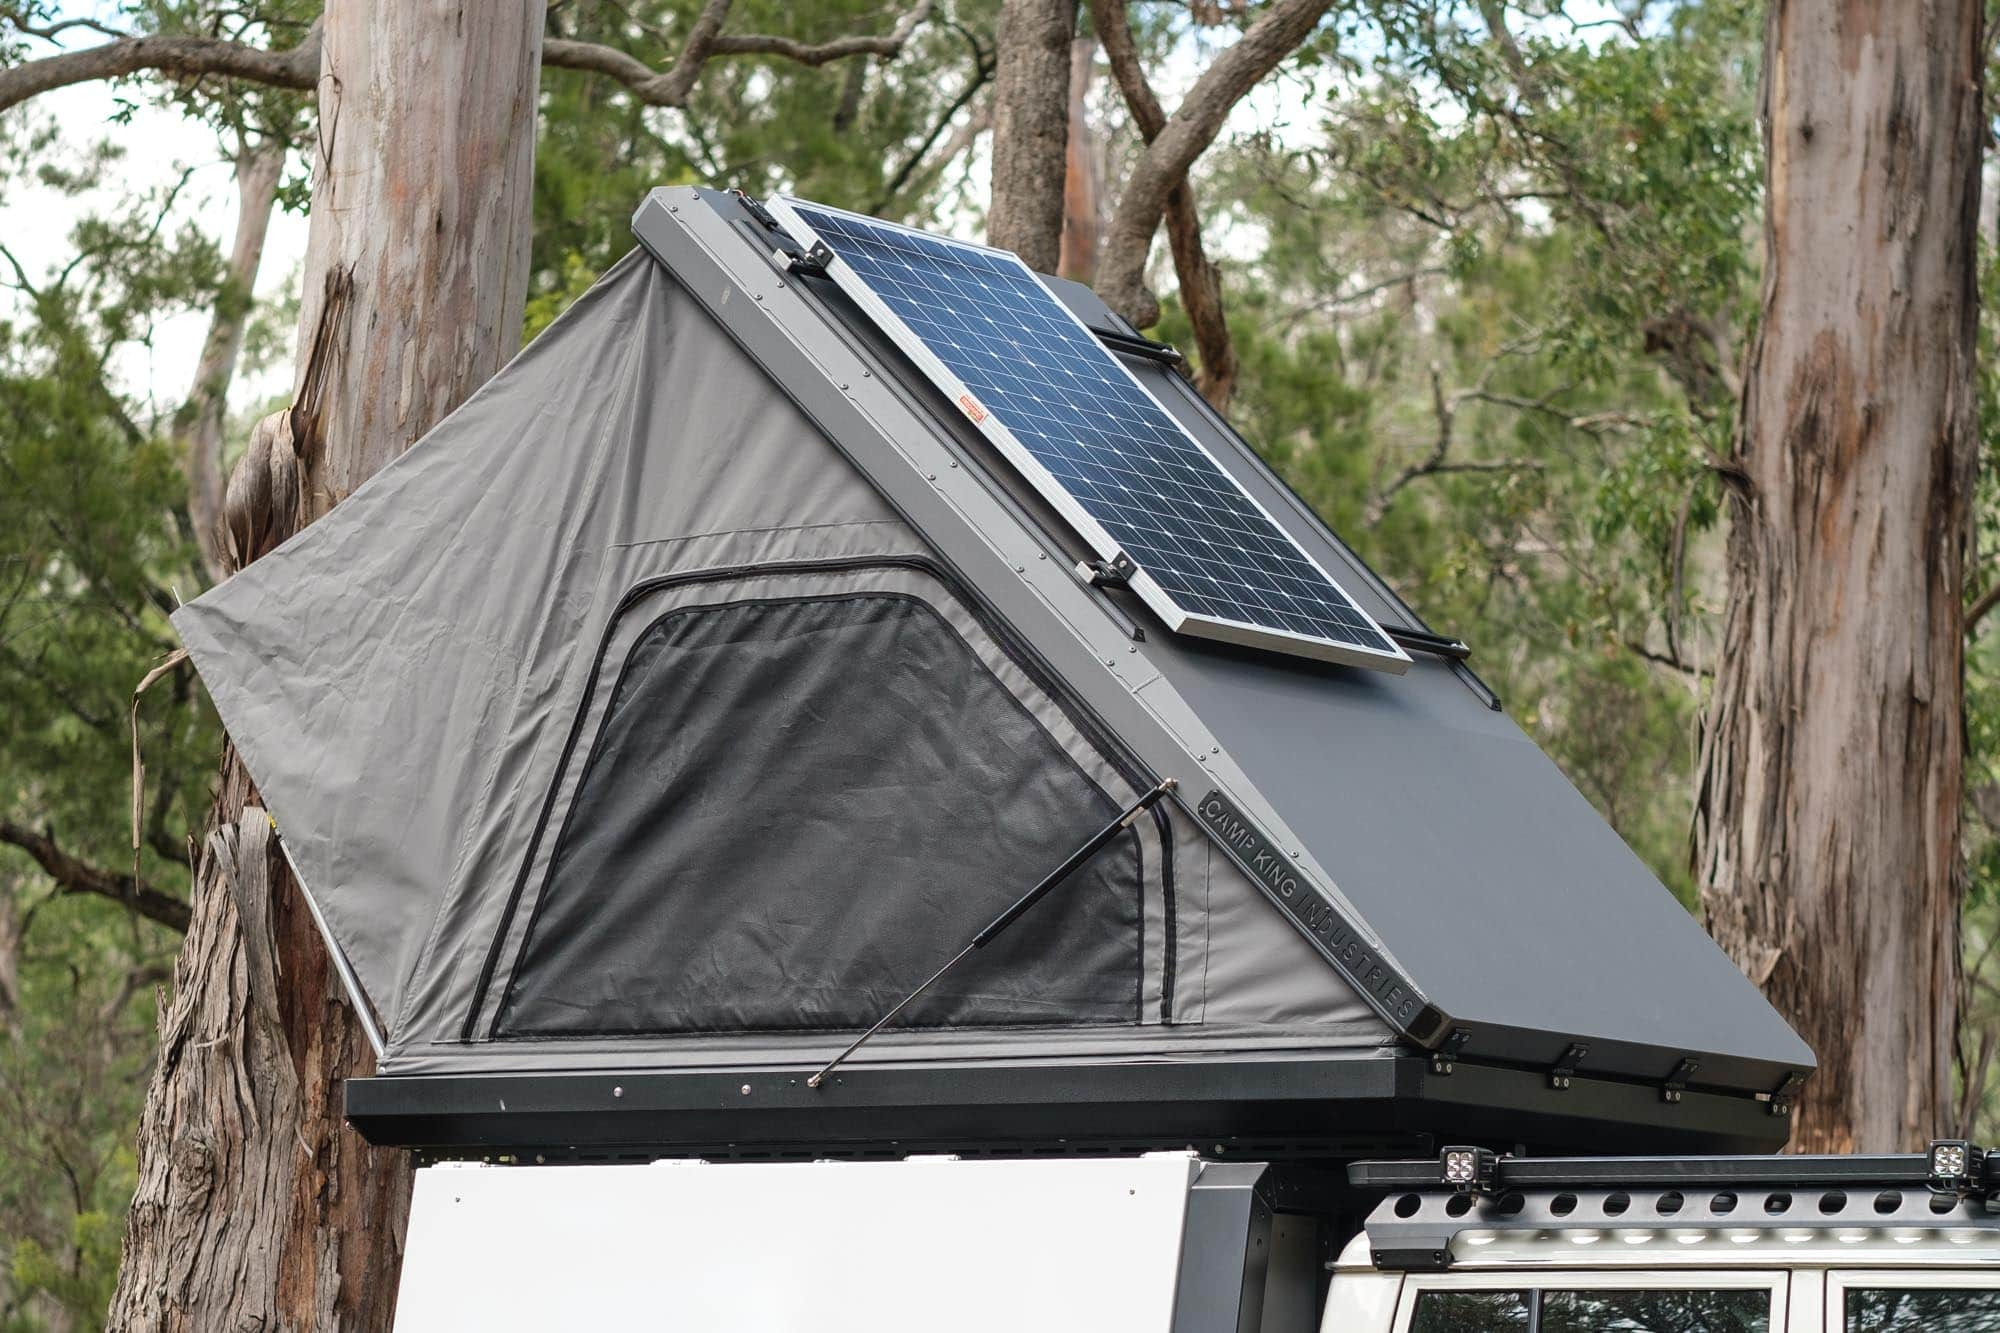 Camp King hardshell roof top tent